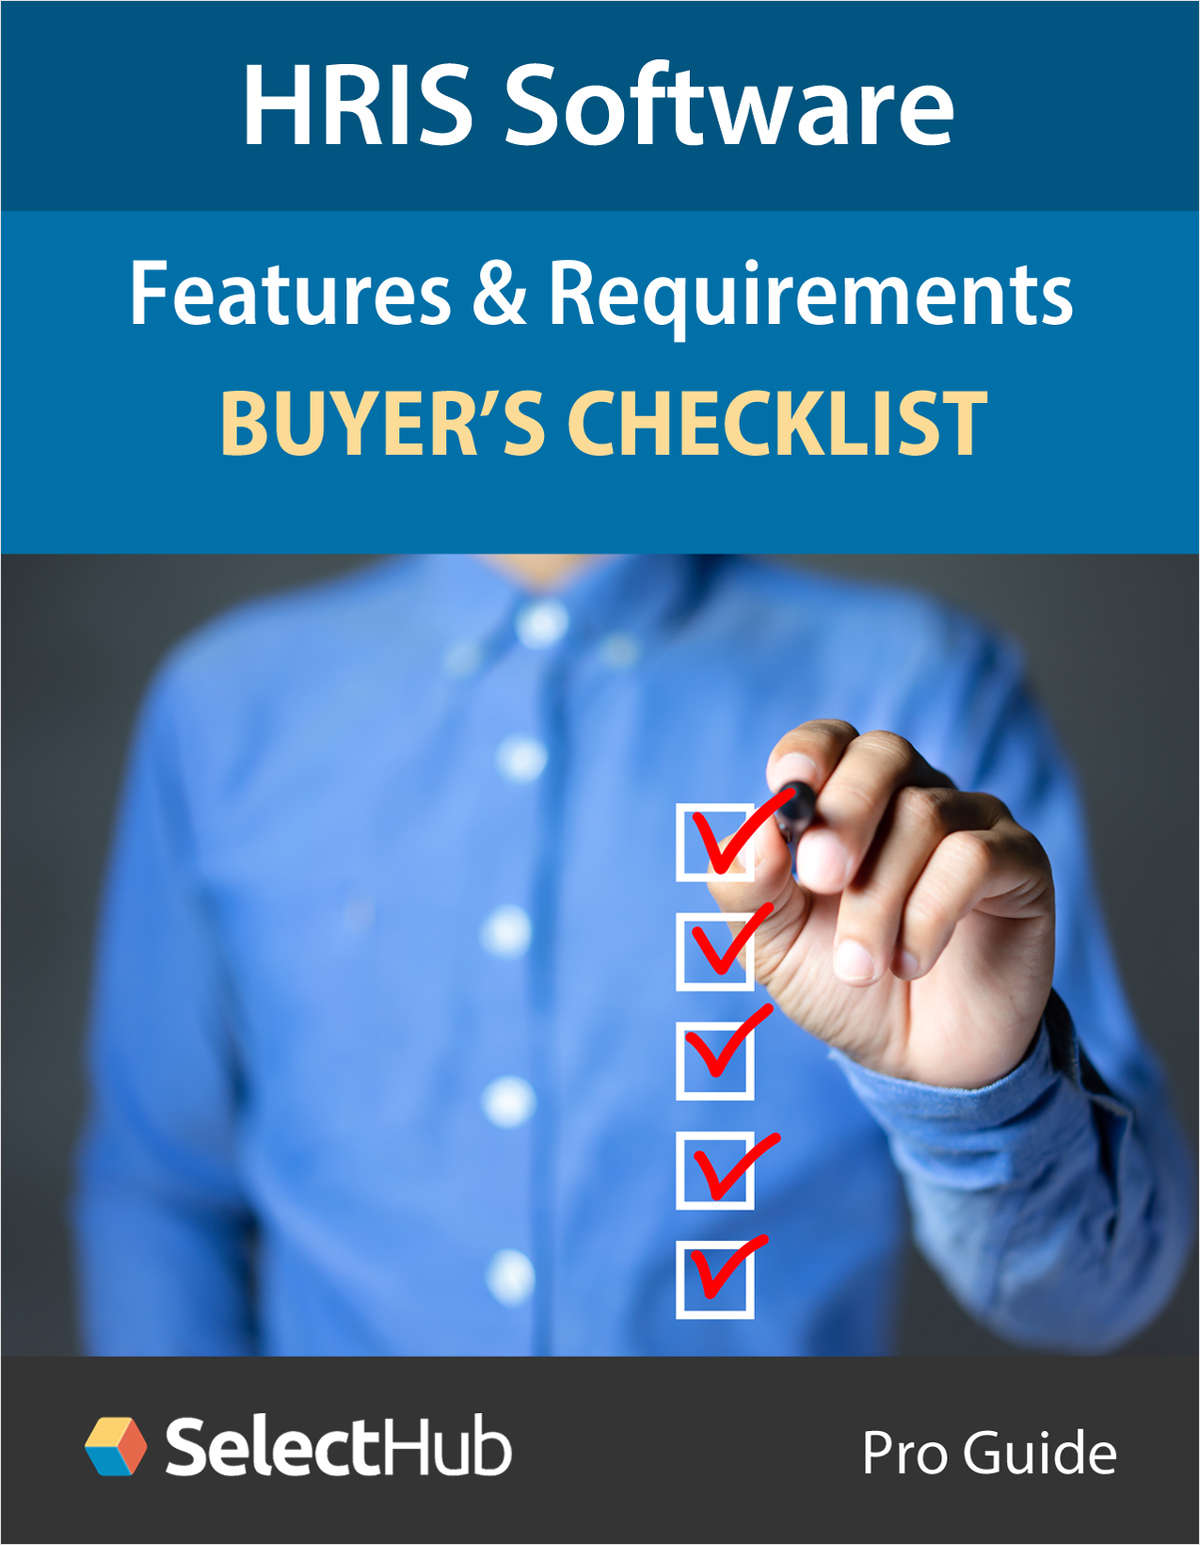 HRIS Software Features & Requirements--Buyer's Checklist